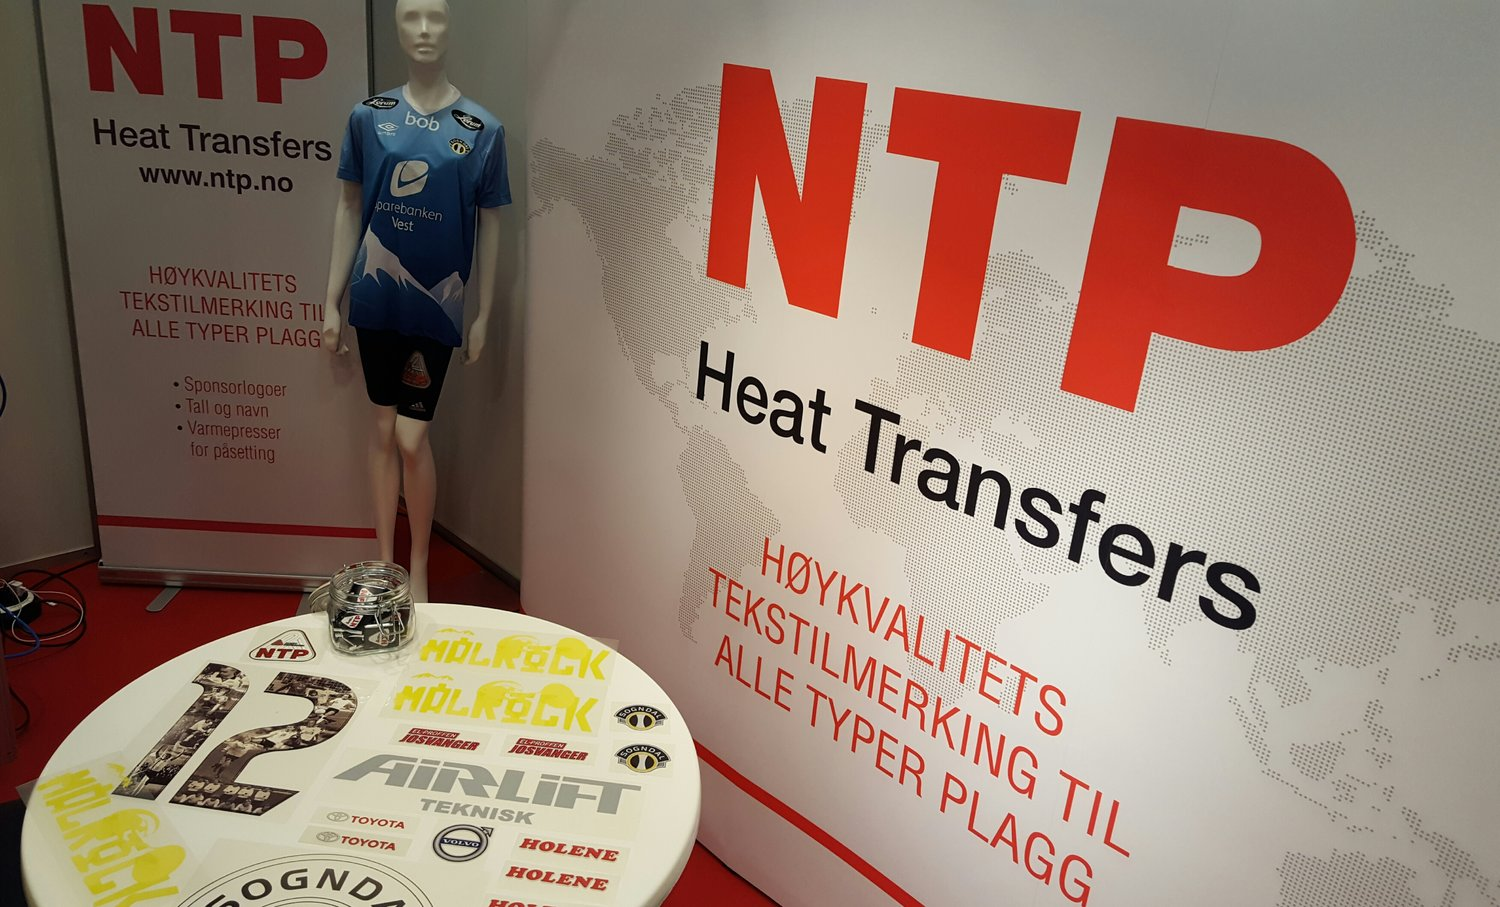 NTP stand